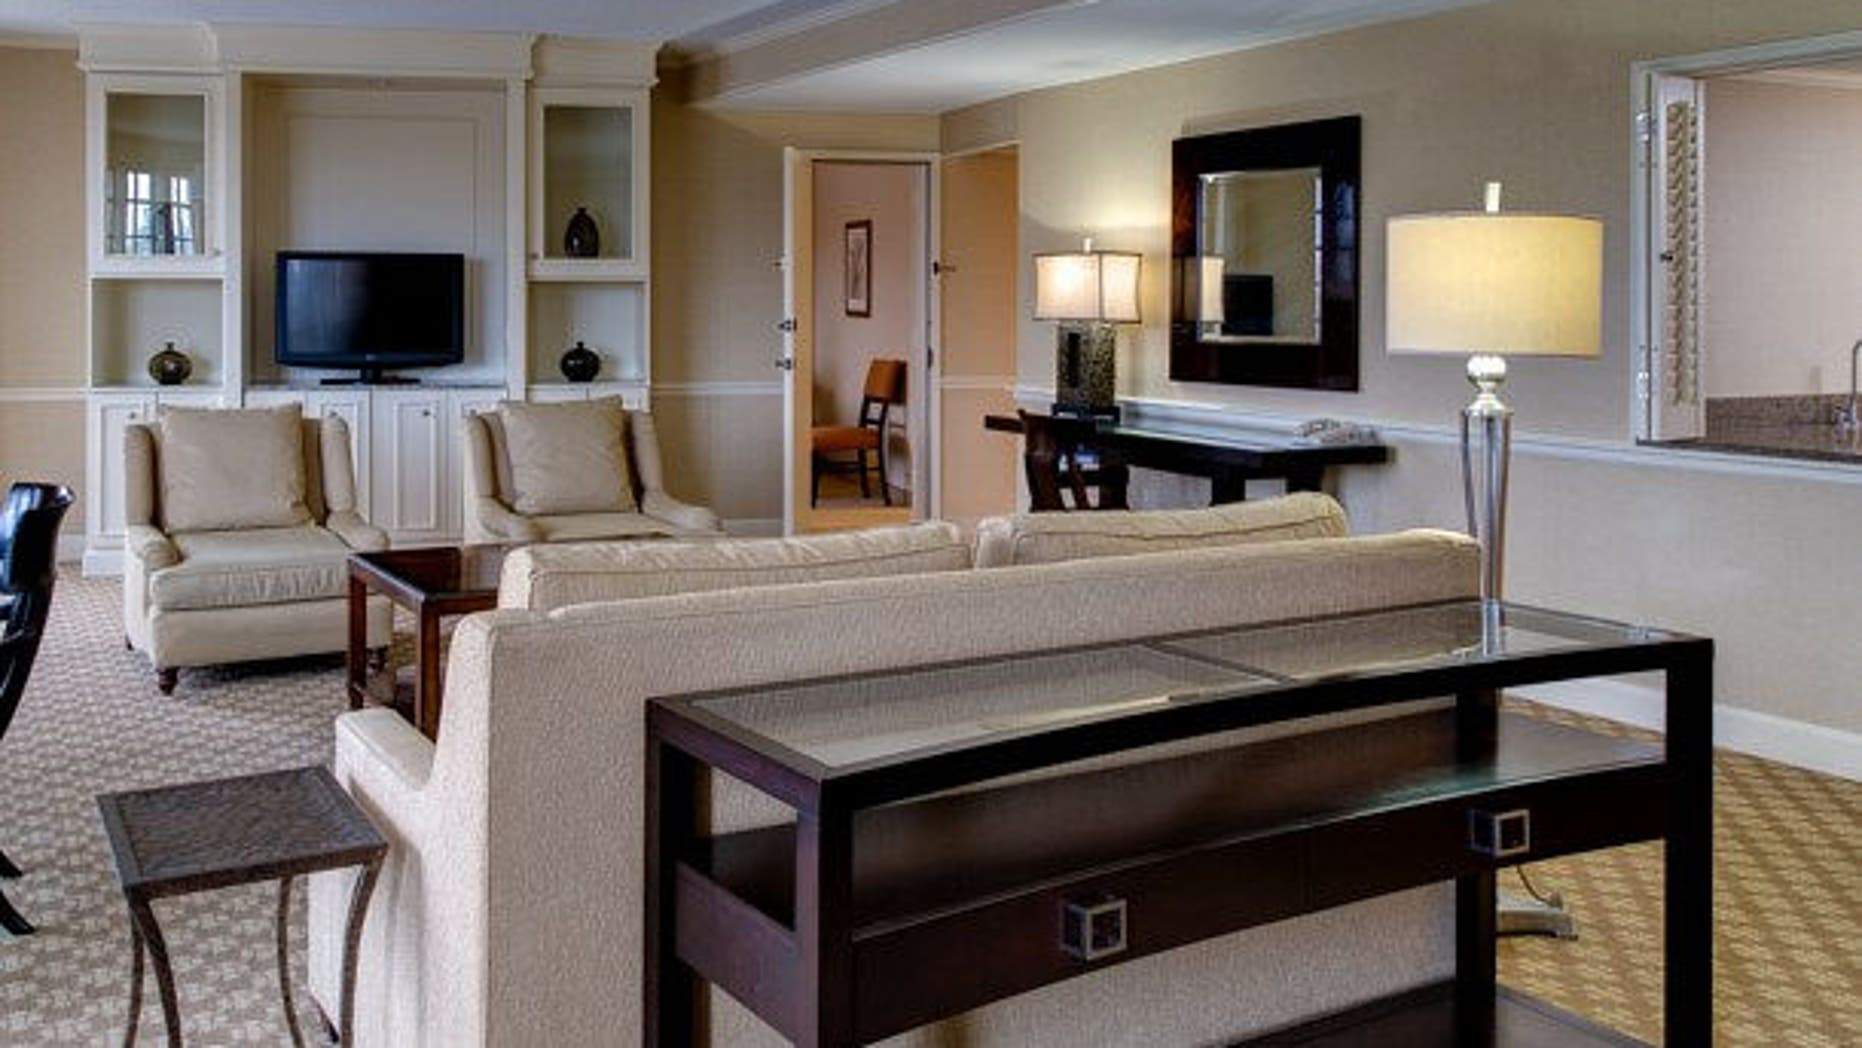 Marriott will no longer keep guests from utilizing personal Wi-Fi hotspot devices.